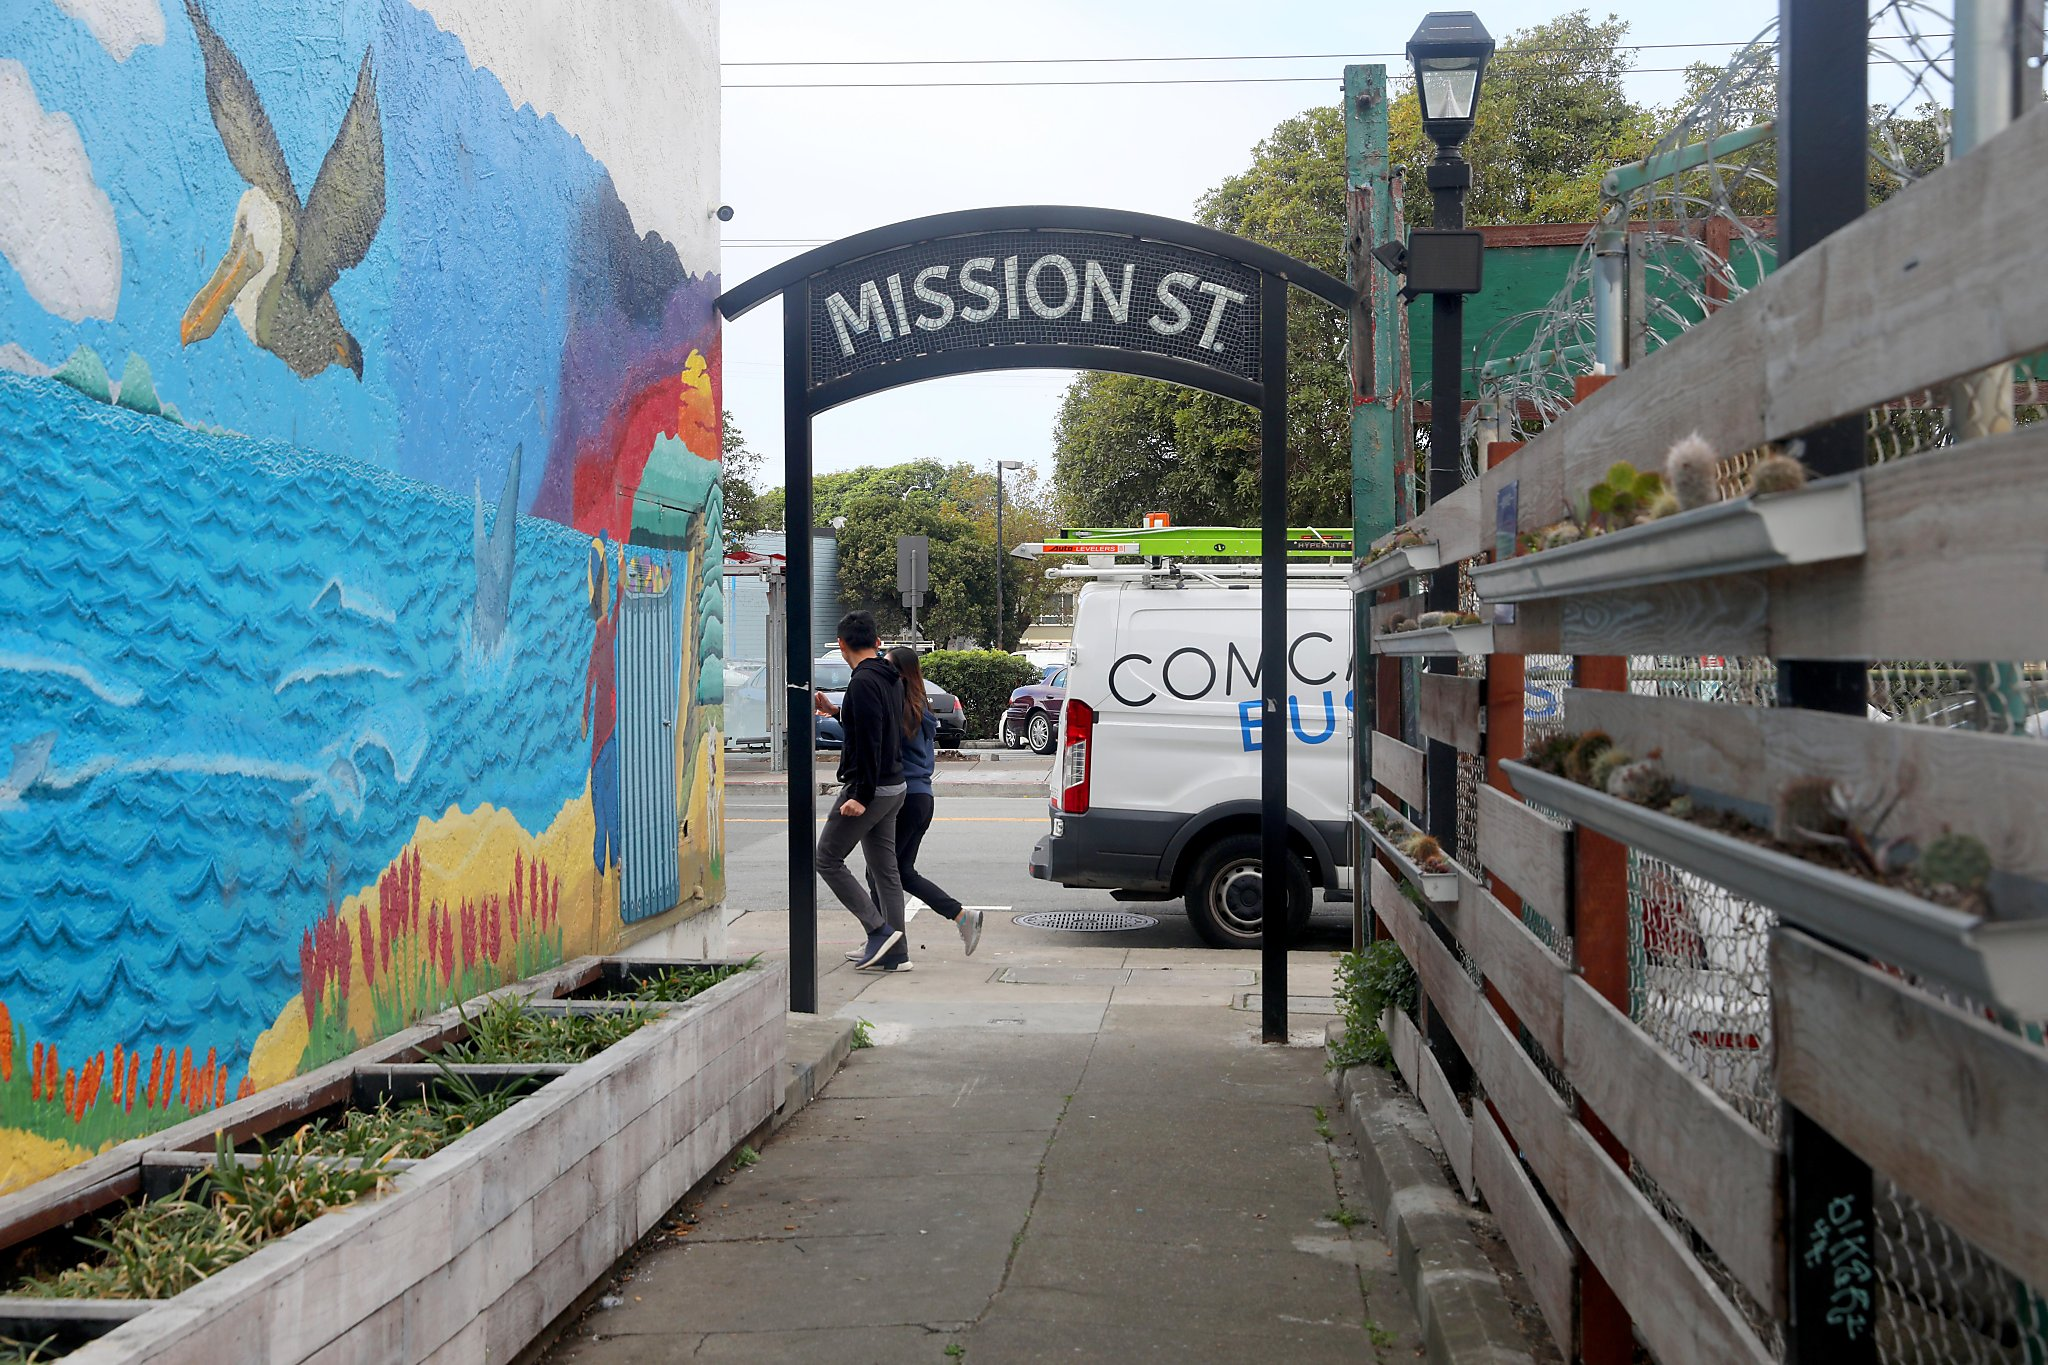 This forgotten part of San Francisco was once affordable. Now, the average home price is $1 million - San Francisco Chronicle